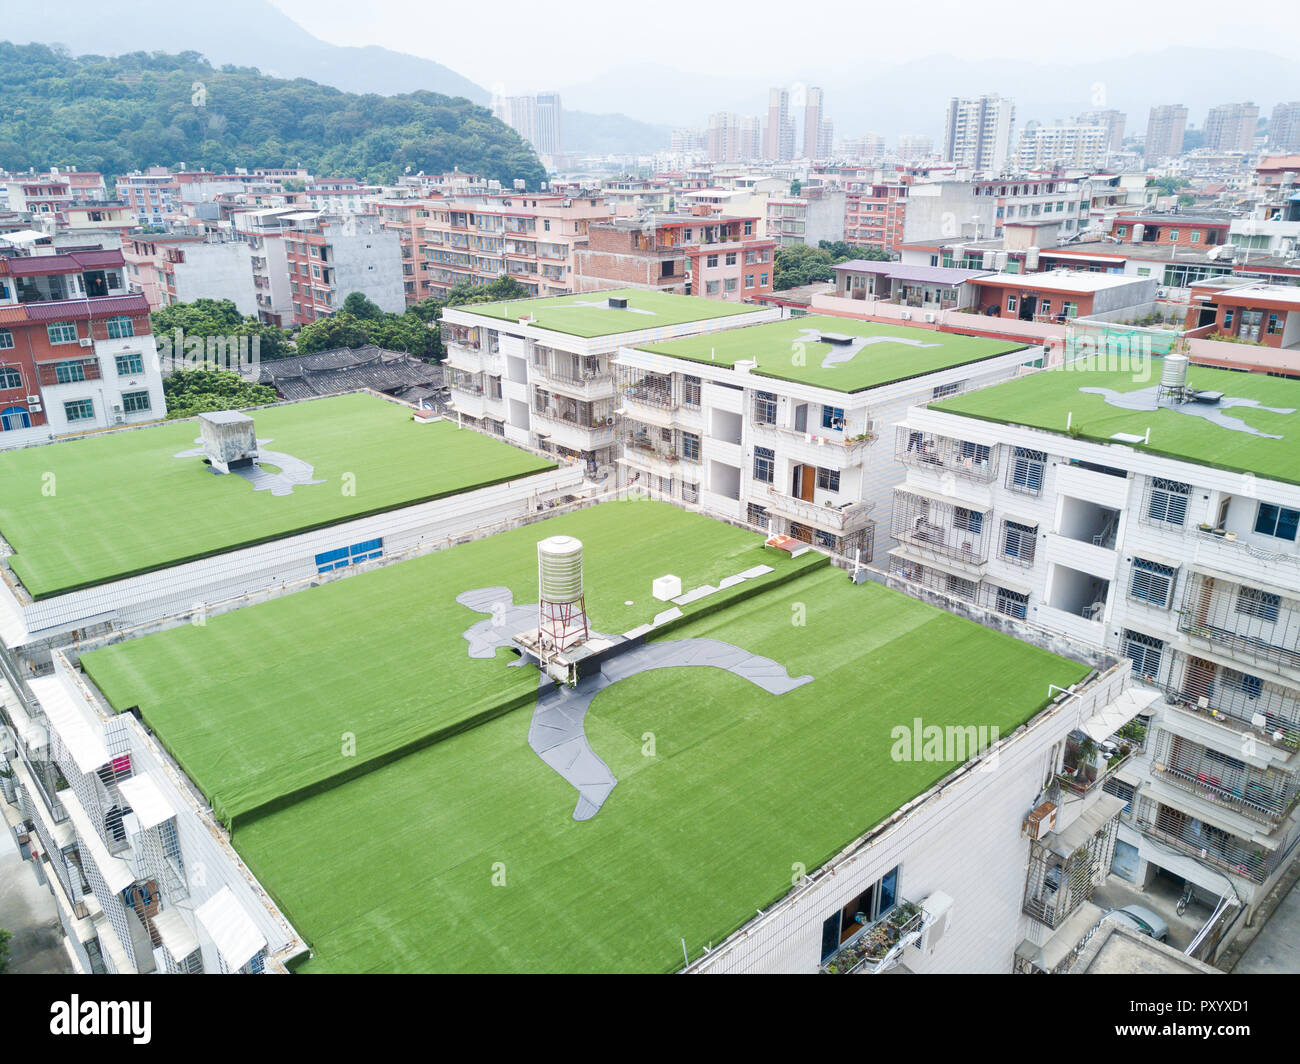 Yongchun. 24th Oct, 2018. Aerial photo taken on Oct. 24, 2018 shows Kung Fu posture shaped turfs on buidlings' roofs in Yongchun County, southeast China's Fujian Province. Credit: Song Weiwei/Xinhua/Alamy Live News - Stock Image